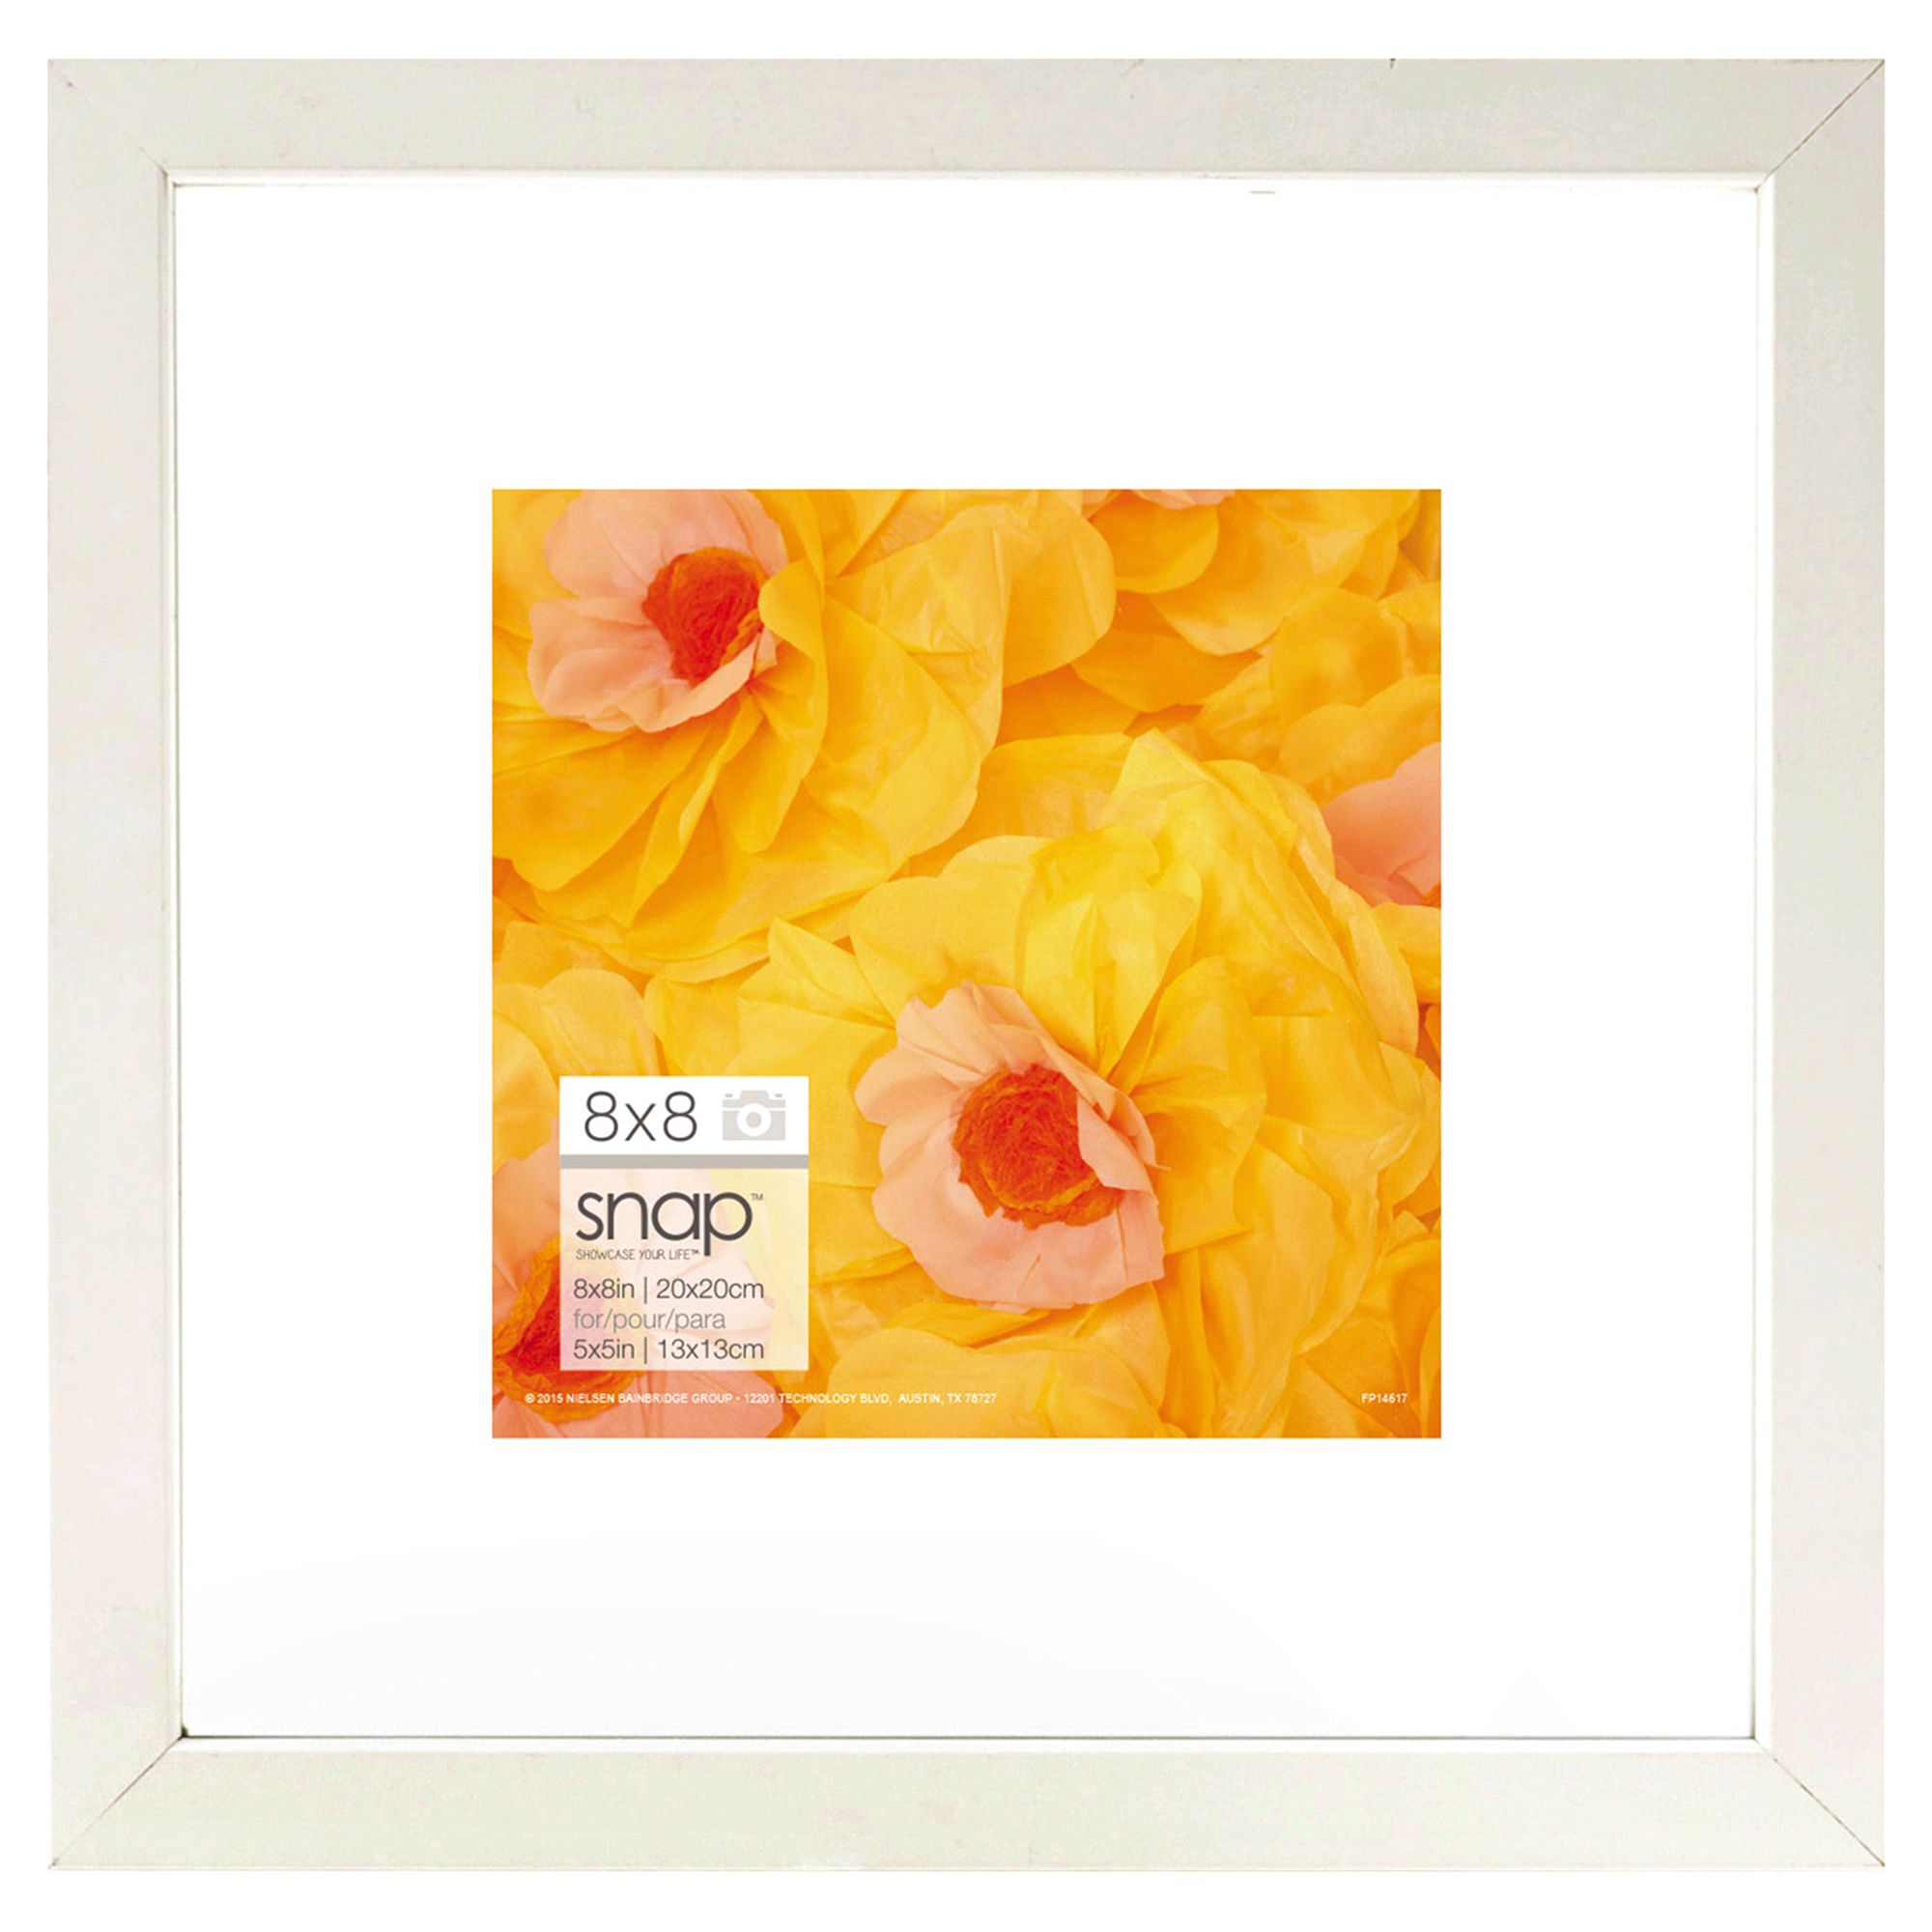 Snap 8 x 8 White Floating Frame | Meijer.com